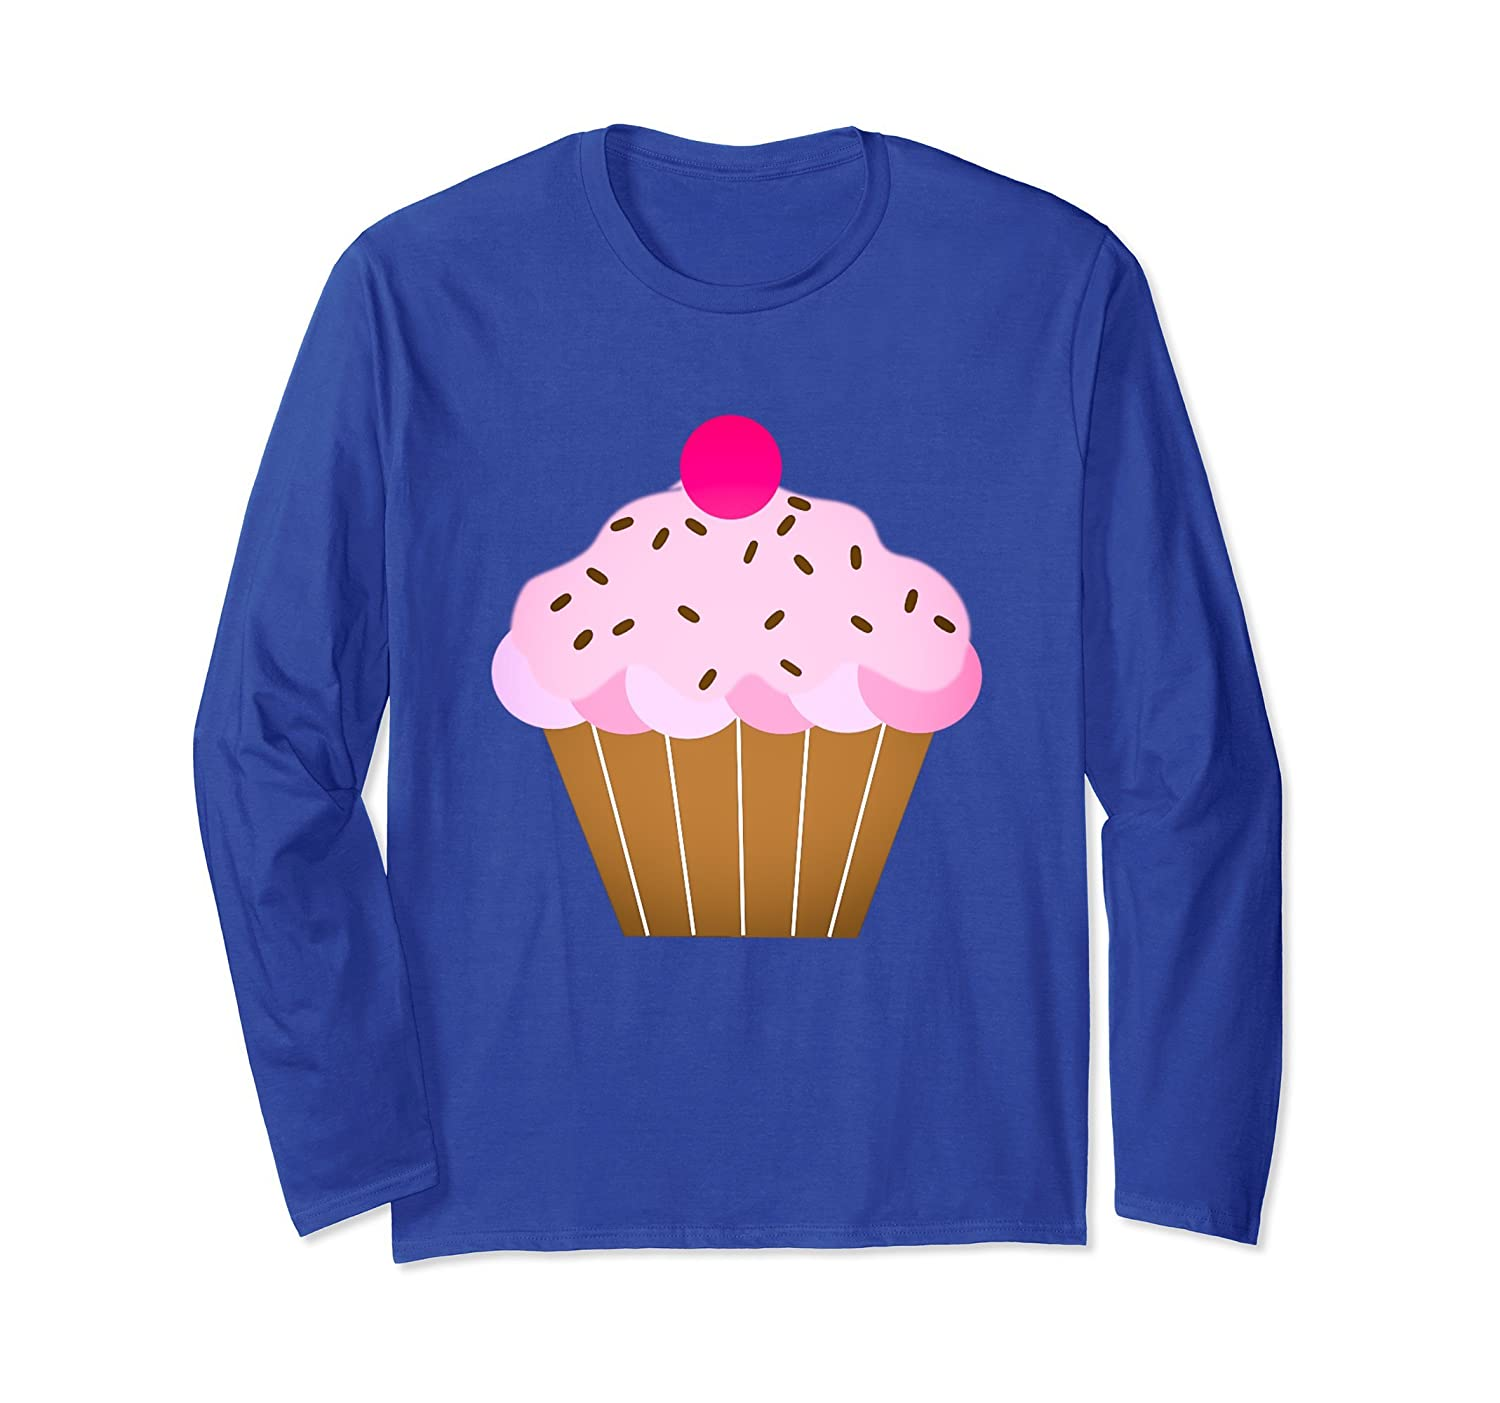 Love Cupcakes Long Sleeve t-shirt Cute Pink Strawberry Treat-mt